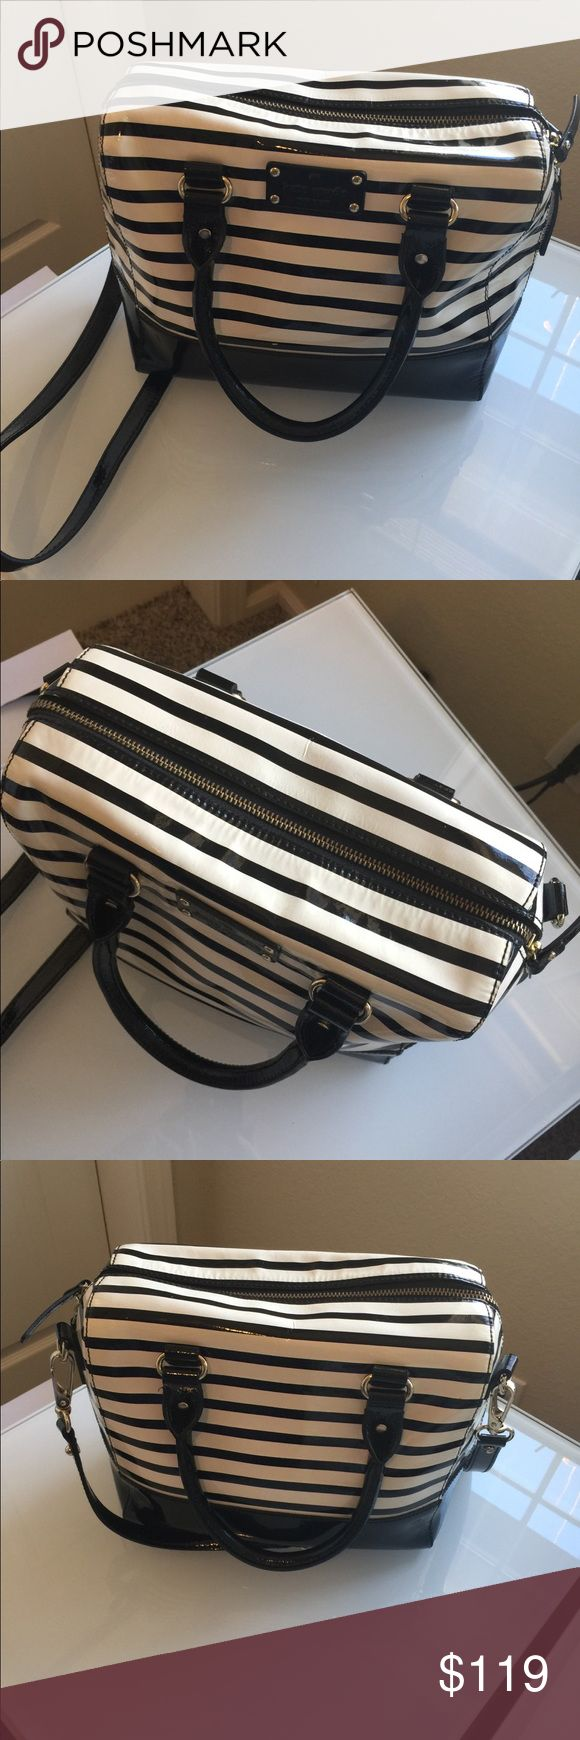 """Kate Spade NY Alesia Wellesley Bag Super stylish black/ white  Excellent clean condition  12x10x5 Strap drop 5"""" Long strap 20-25"""" kate spade Bags Satchels"""